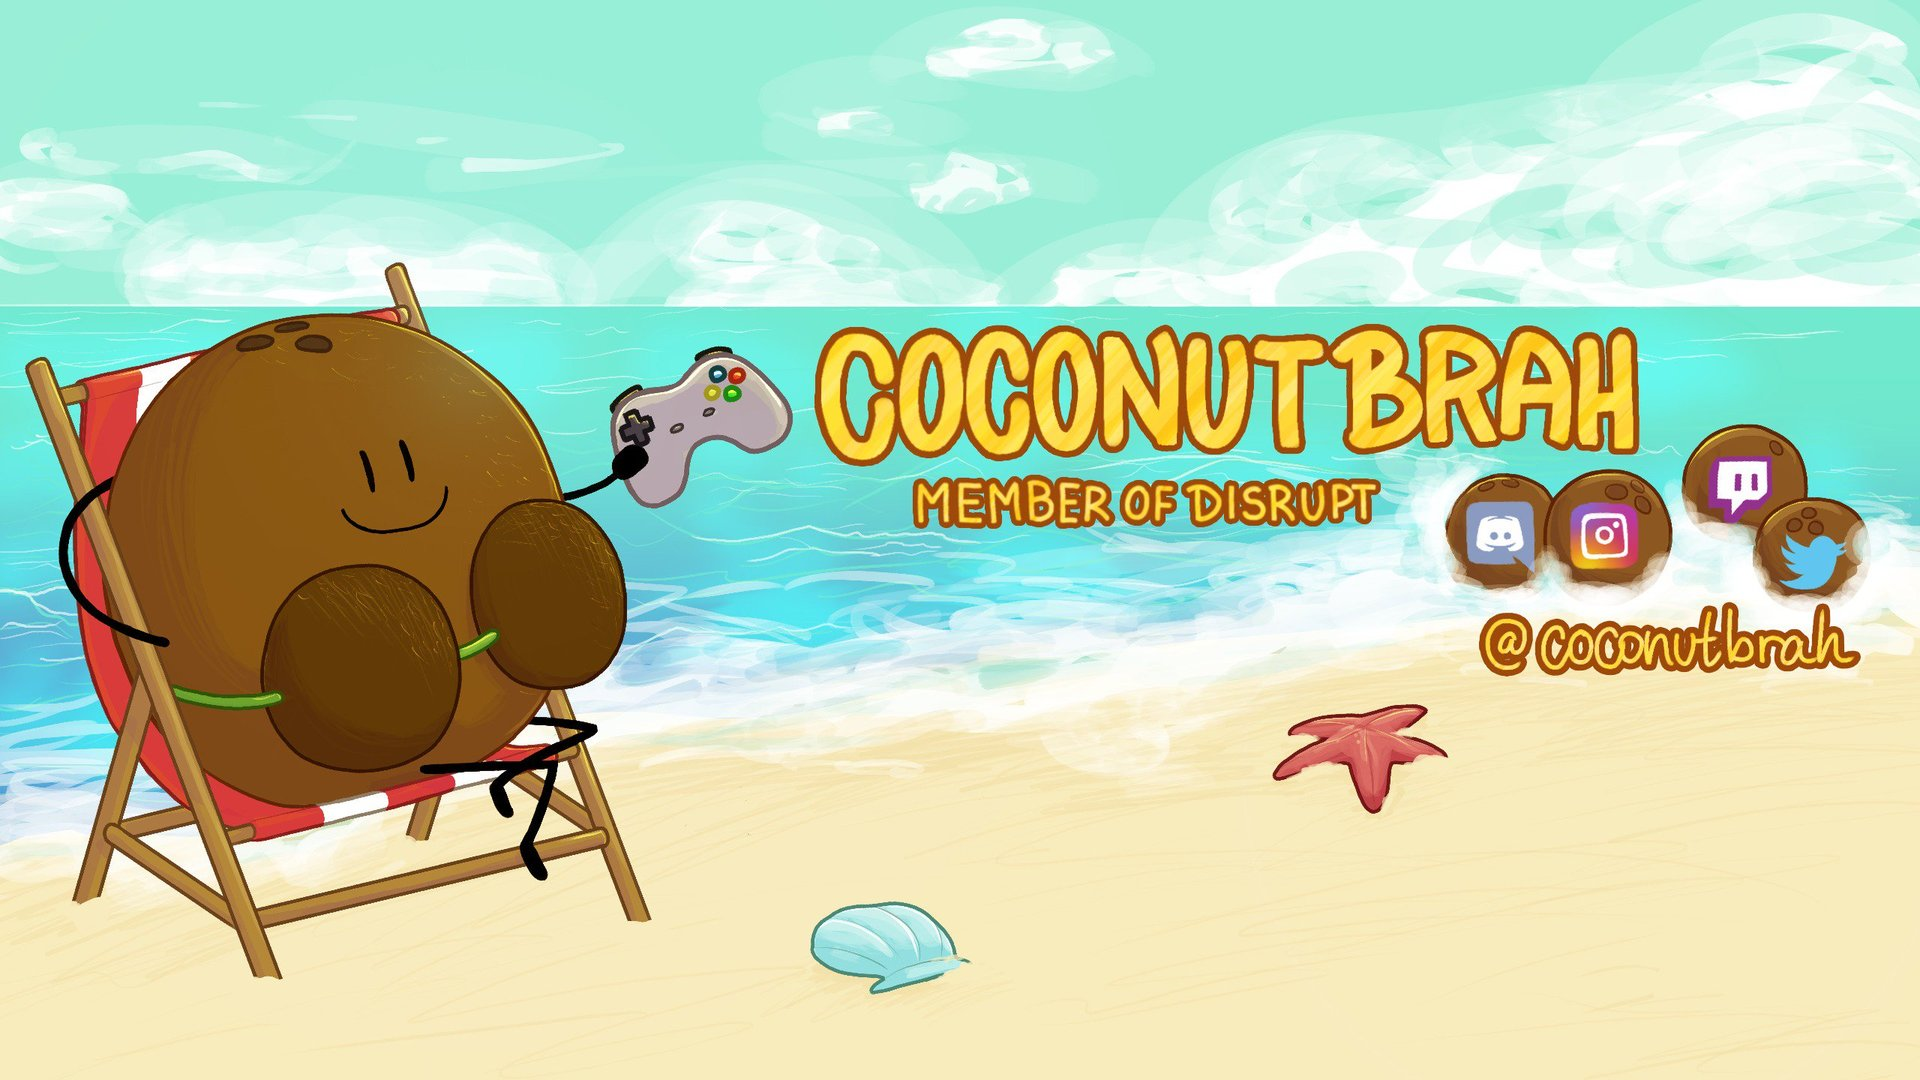 Official Coconut Brah LIMITED EDITION Merch Store